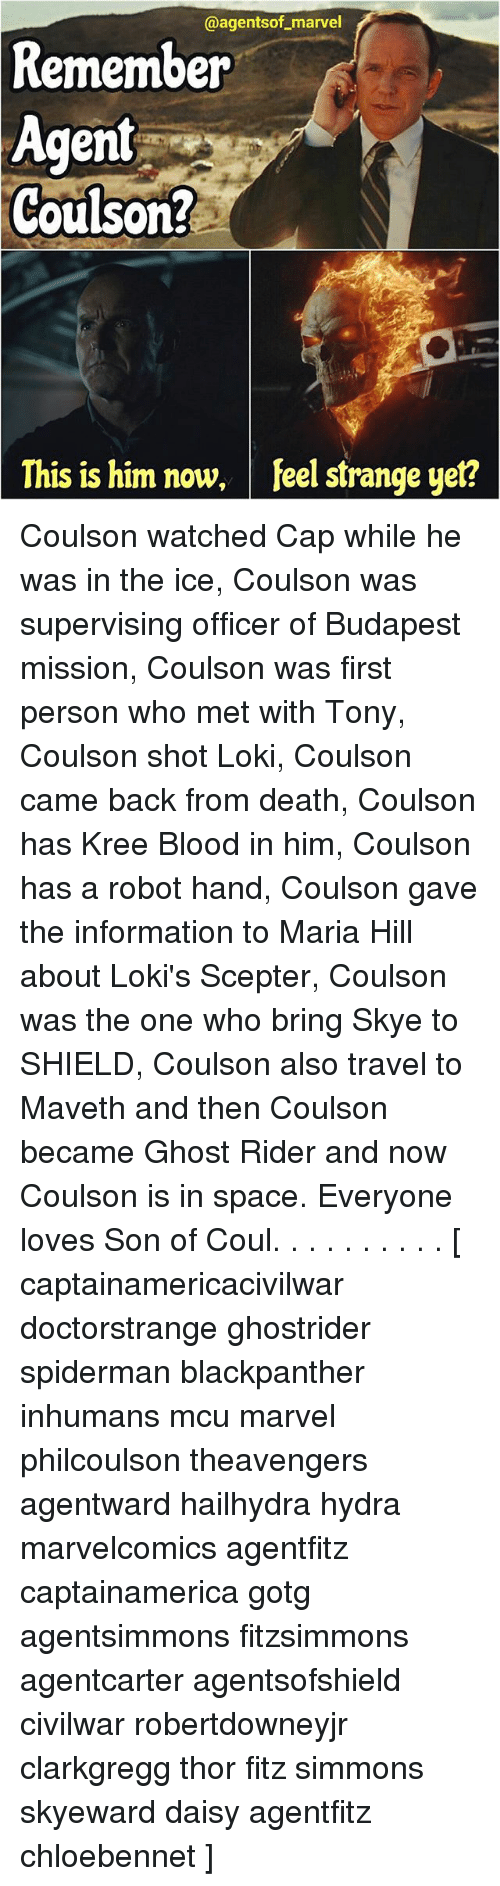 kree: @agentsof marvel  Remember  Agent  Coulson?  This is him now, feel strange yet? Coulson watched Cap while he was in the ice, Coulson was supervising officer of Budapest mission, Coulson was first person who met with Tony, Coulson shot Loki, Coulson came back from death, Coulson has Kree Blood in him, Coulson has a robot hand, Coulson gave the information to Maria Hill about Loki's Scepter, Coulson was the one who bring Skye to SHIELD, Coulson also travel to Maveth and then Coulson became Ghost Rider and now Coulson is in space. Everyone loves Son of Coul. . . . . . . . . . [ captainamericacivilwar doctorstrange ghostrider spiderman blackpanther inhumans mcu marvel philcoulson theavengers agentward hailhydra hydra marvelcomics agentfitz captainamerica gotg agentsimmons fitzsimmons agentcarter agentsofshield civilwar robertdowneyjr clarkgregg thor fitz simmons skyeward daisy agentfitz chloebennet ]